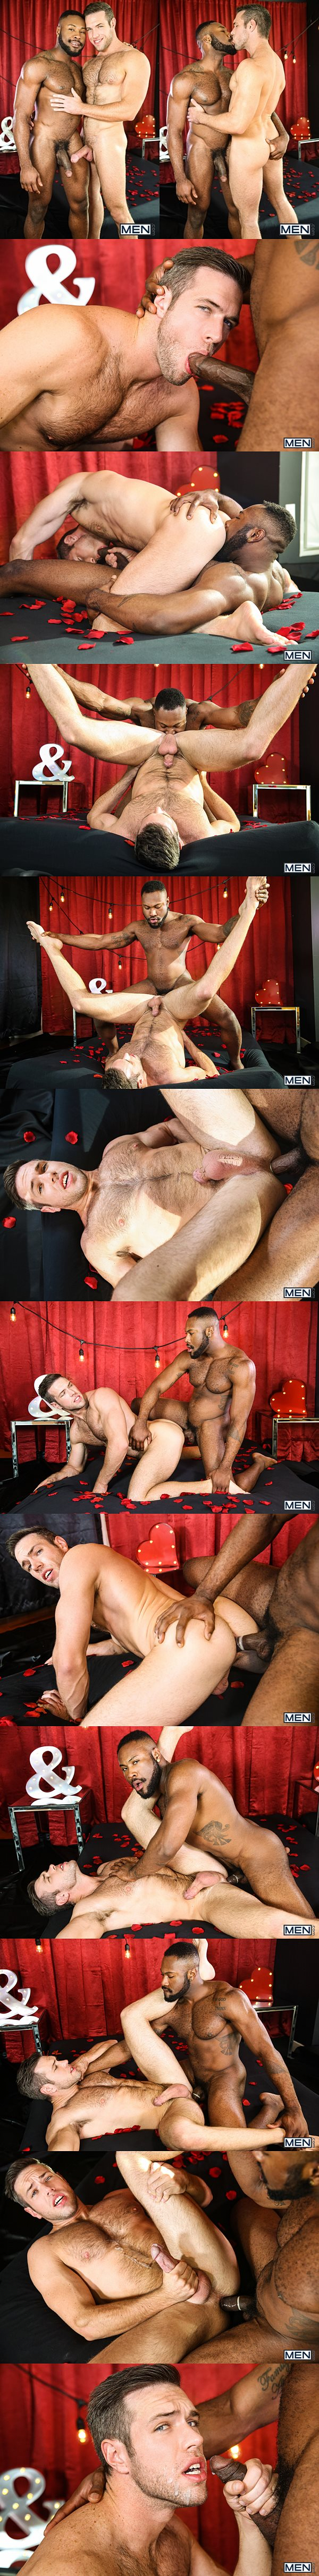 Big-dicked Noah Donovan fucks the cum out of Alex Mecum in Dirty Valentine Part 2 at Men 02